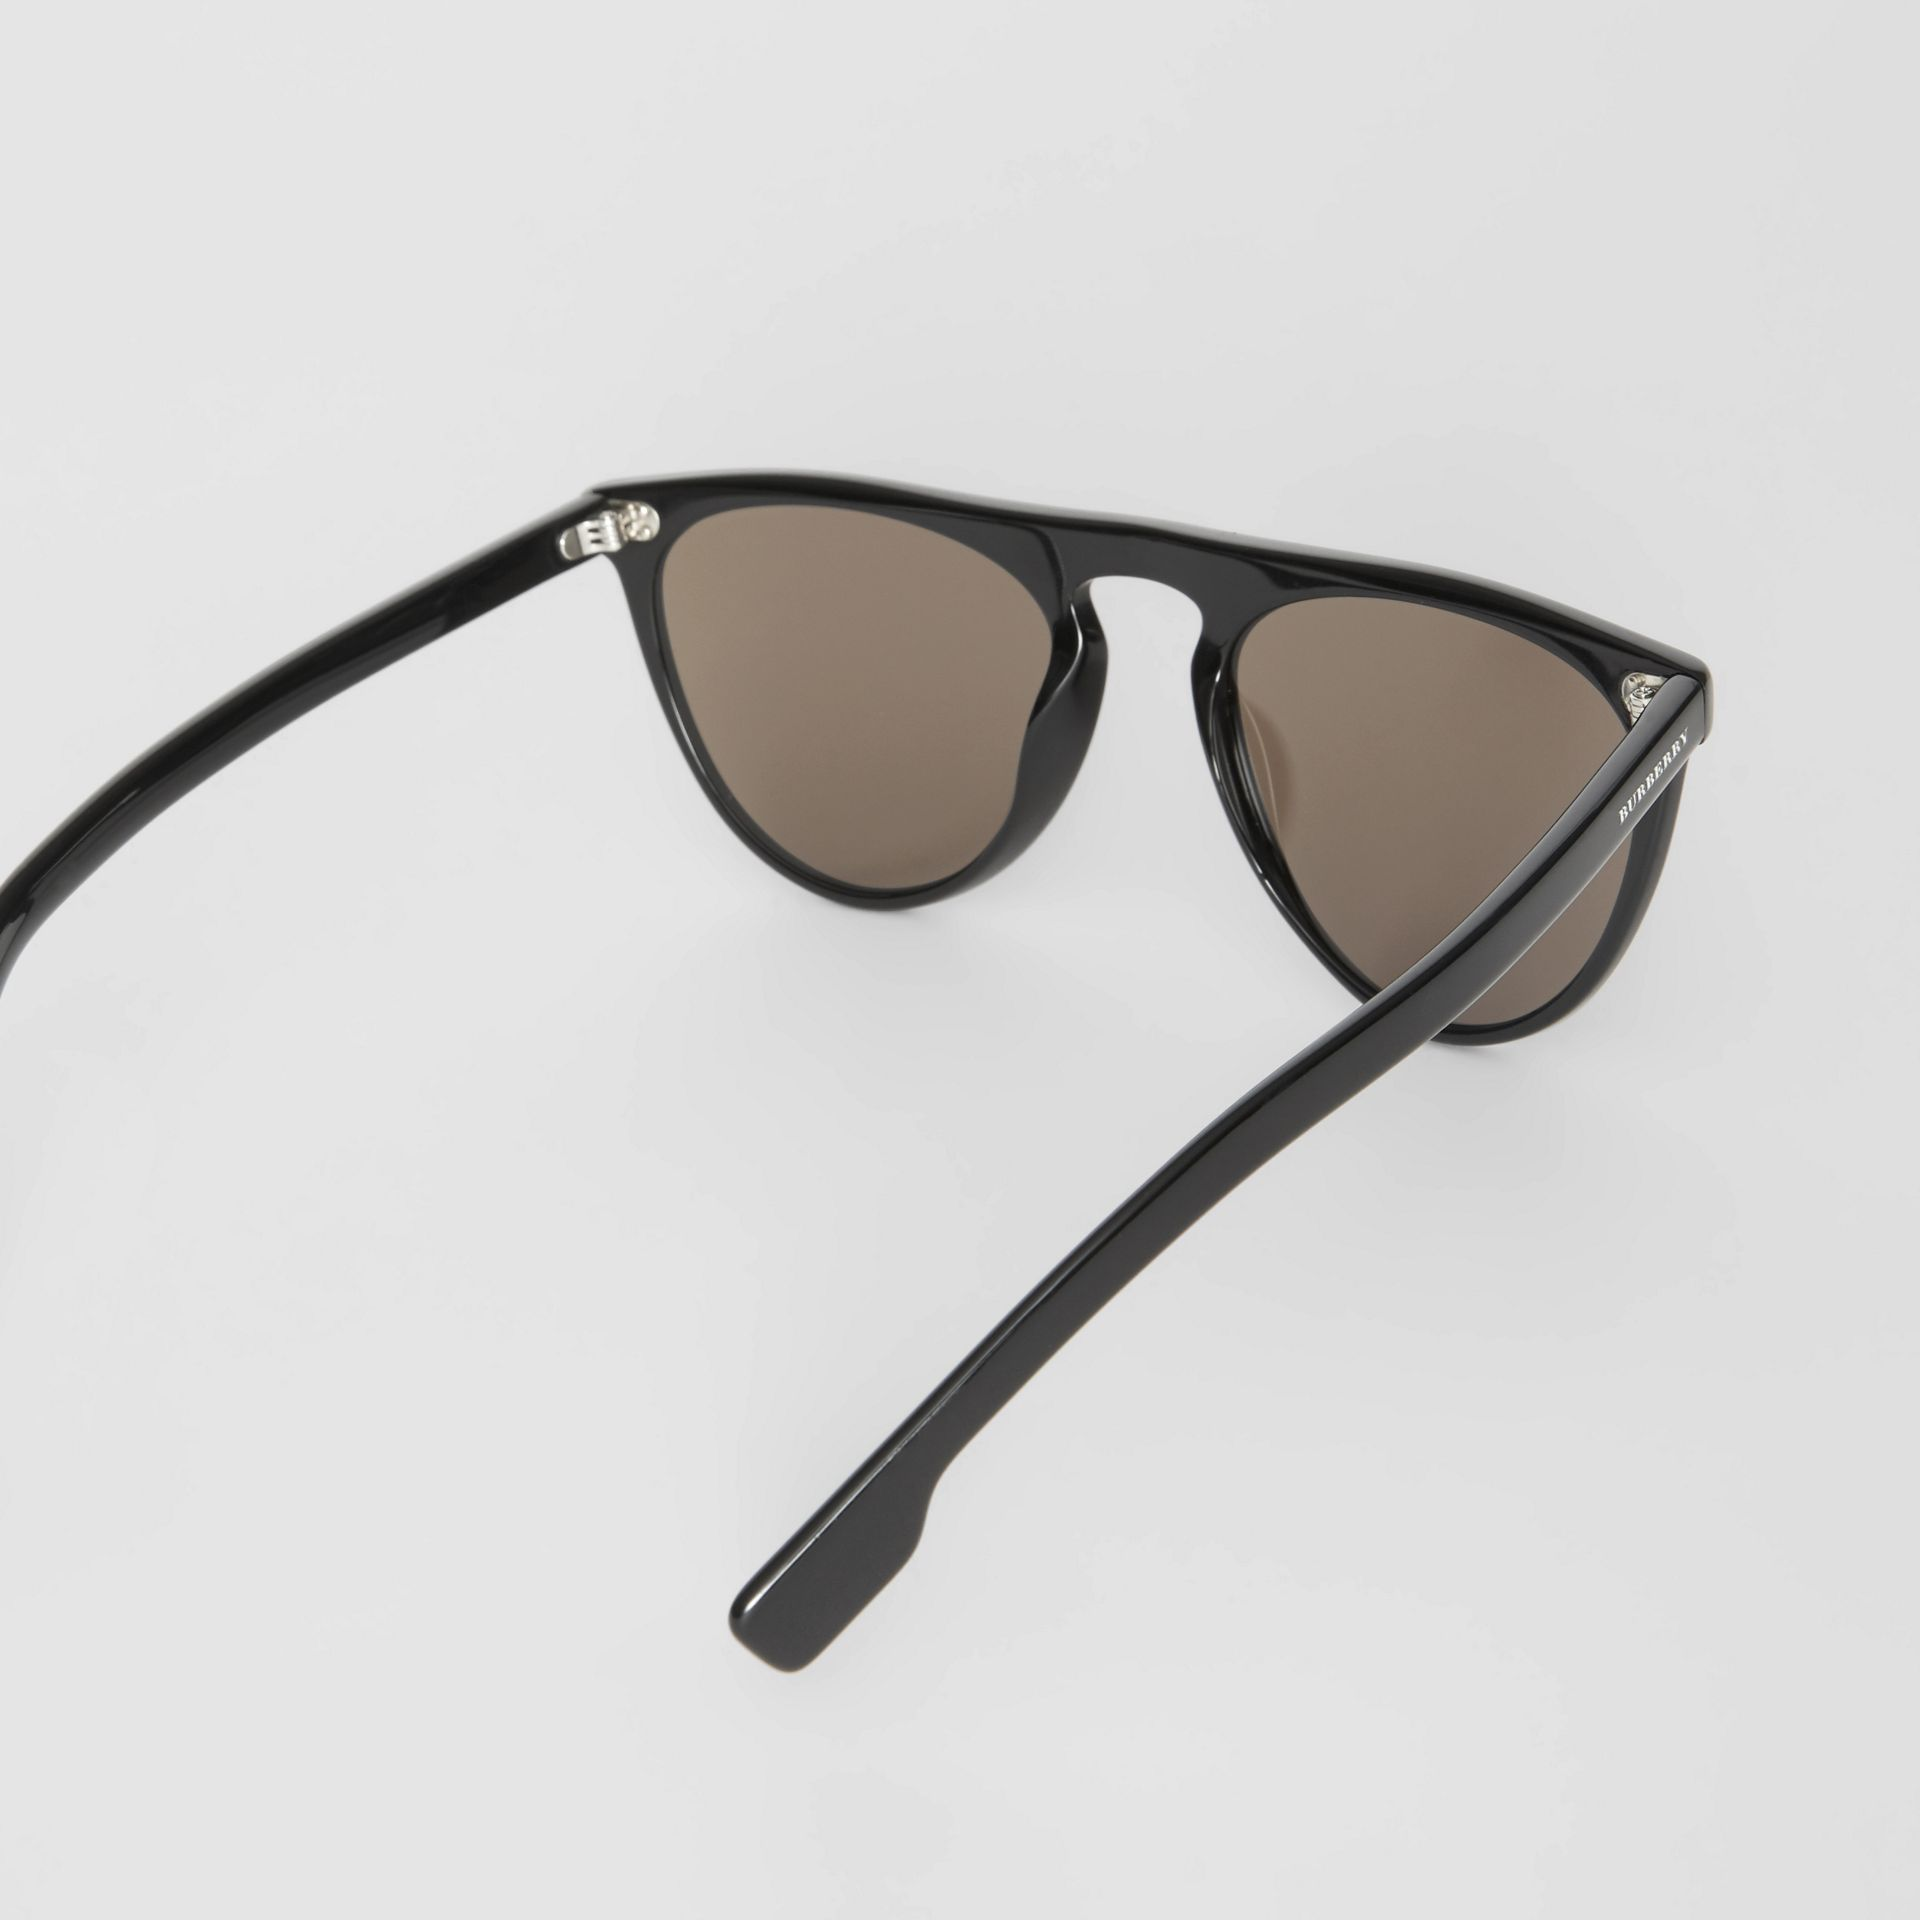 Keyhole D-shaped Sunglasses in Black - Men | Burberry - gallery image 4